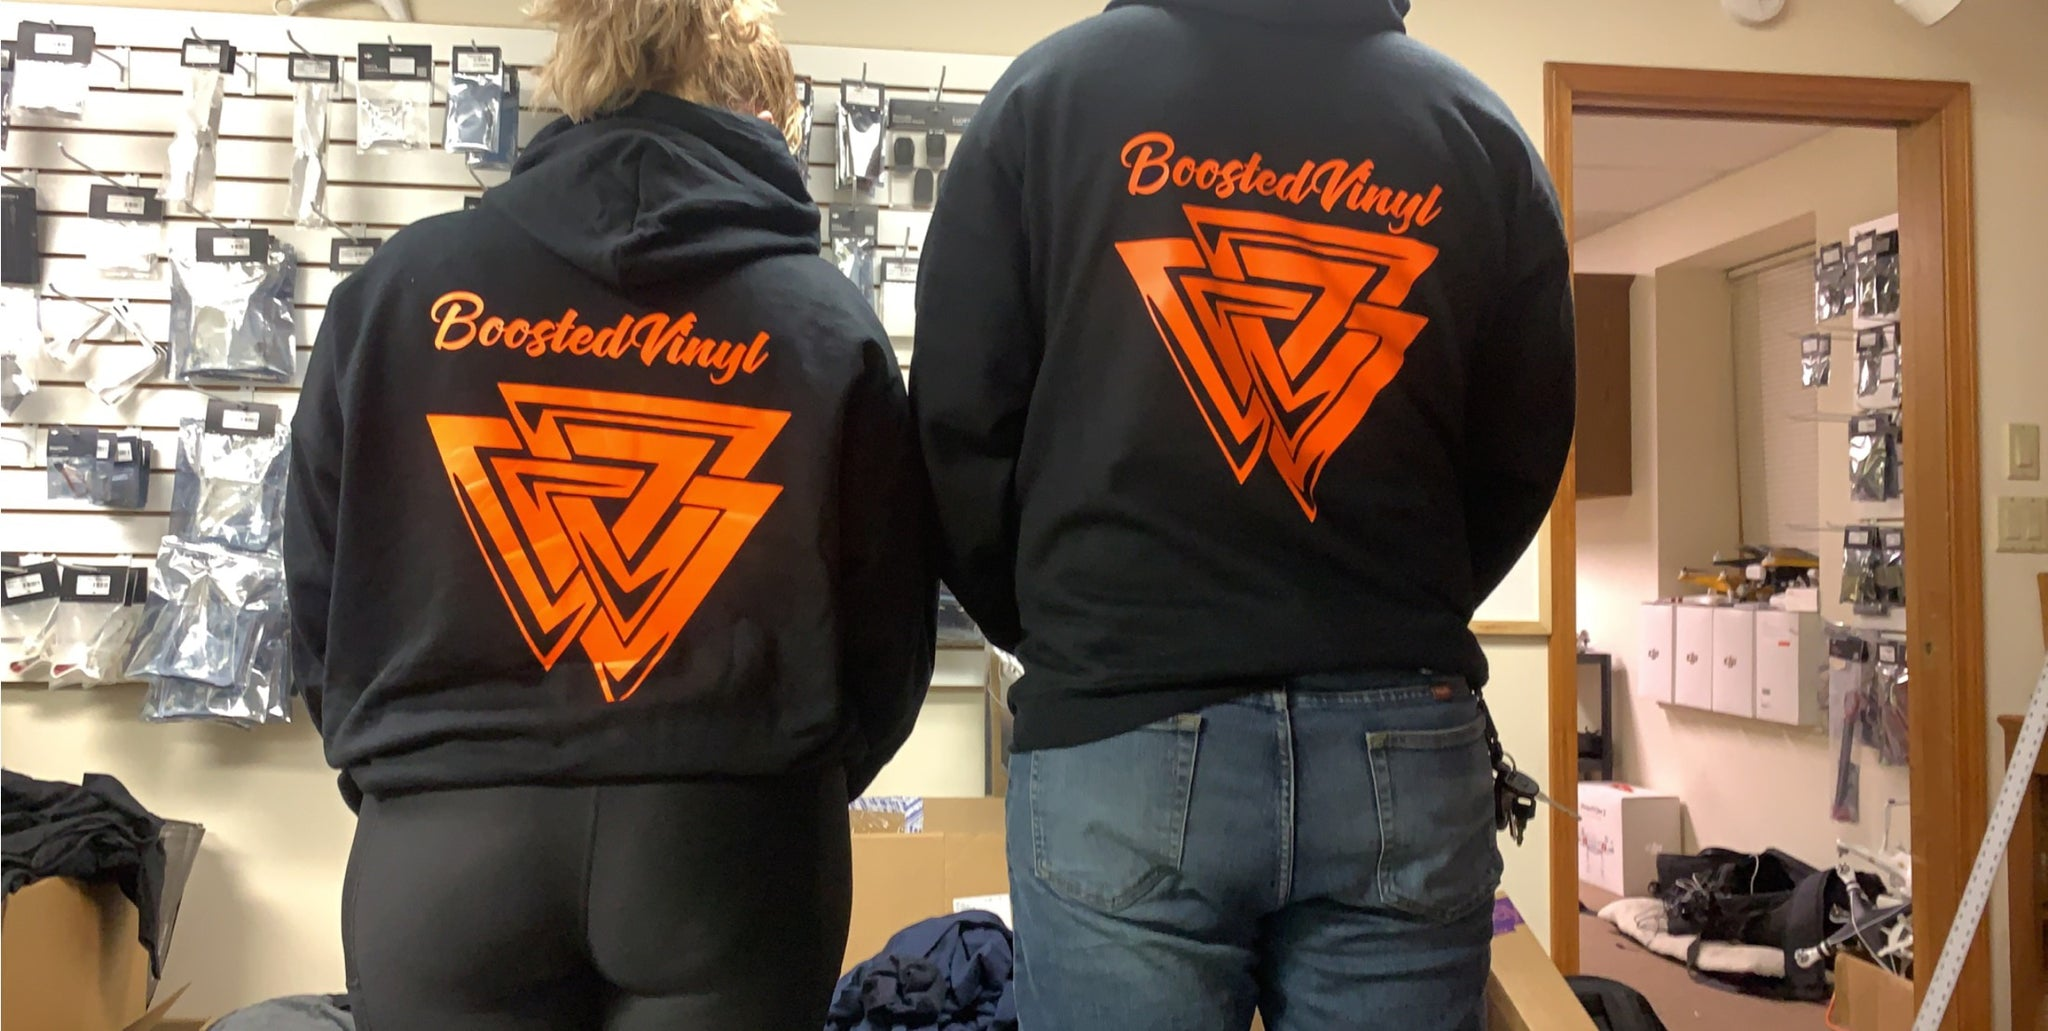 BoostedVinyl Hoodies BoostedVinyl BoostedVinyl Custom stickers vinyl apparel shirts hoodies jackets and clothing